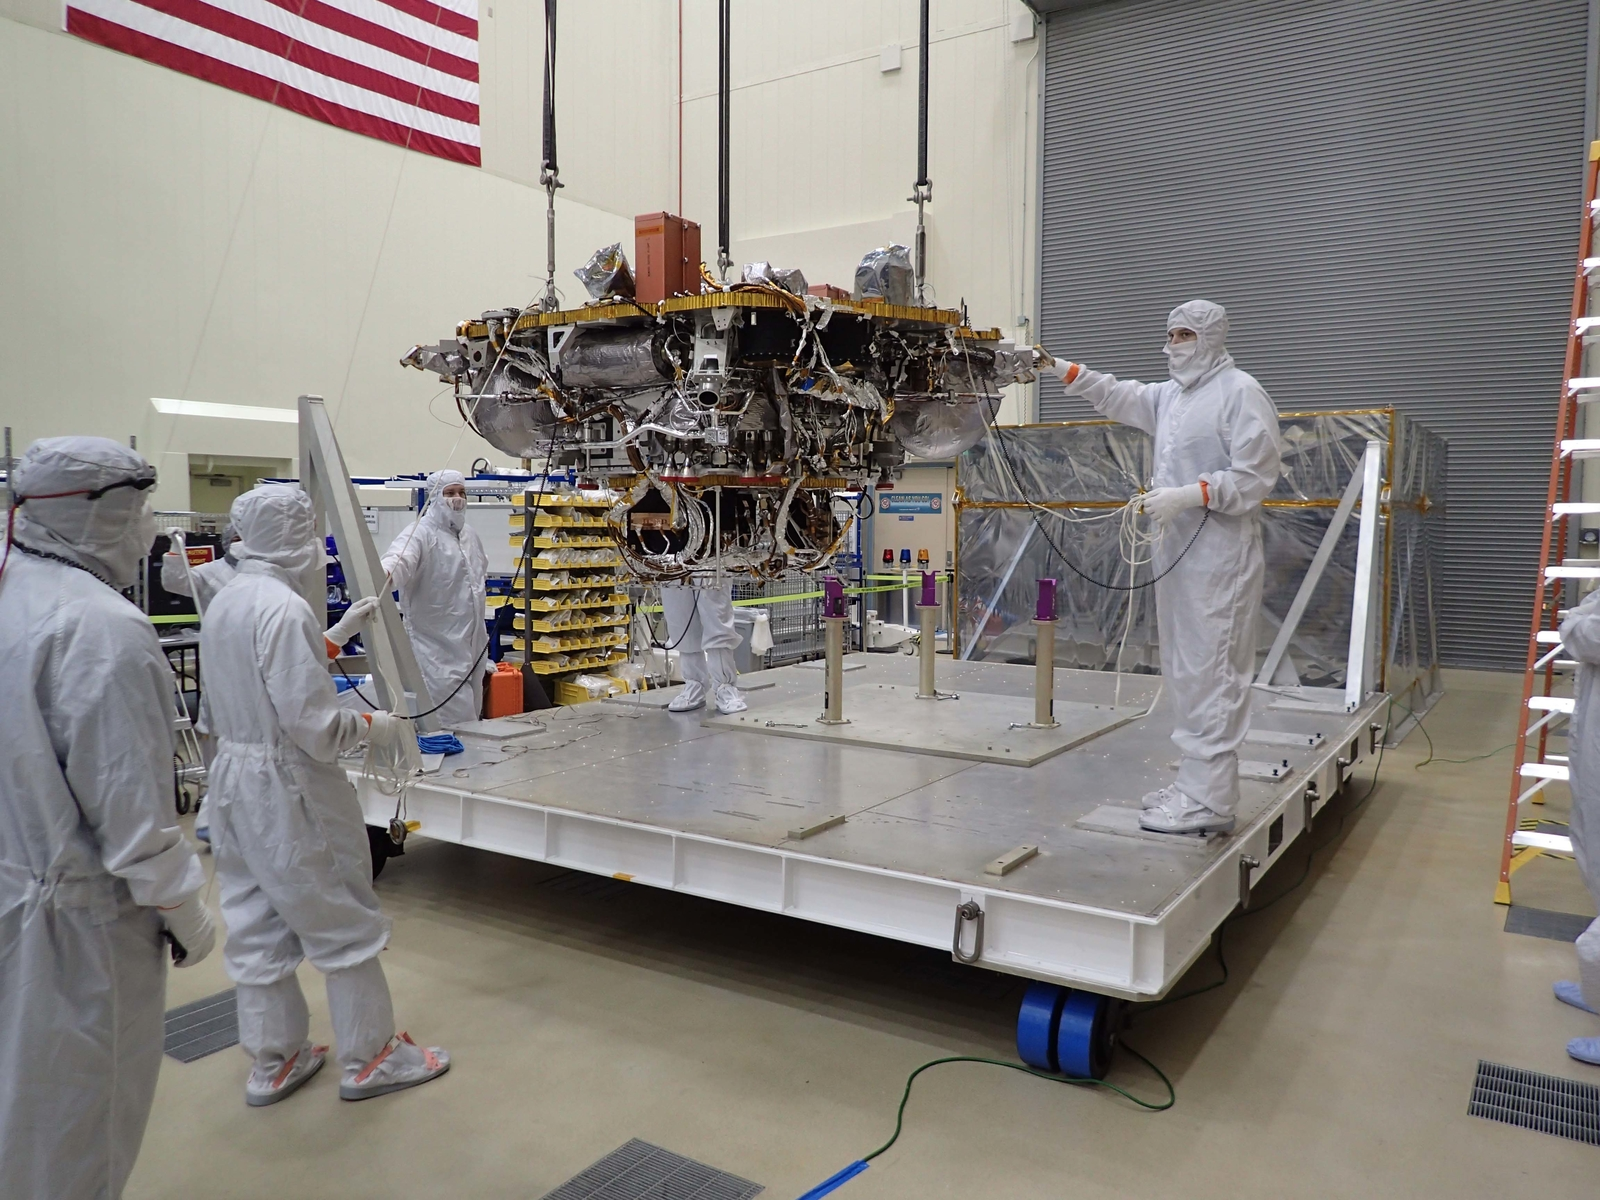 The Mars lander portion of NASA's InSight spacecraft is lifted from the base of a storage container in preparation for testing, in this photo taken June 20, 2017, in a Lockheed Martin clean room facility in Littleton, Colorado.